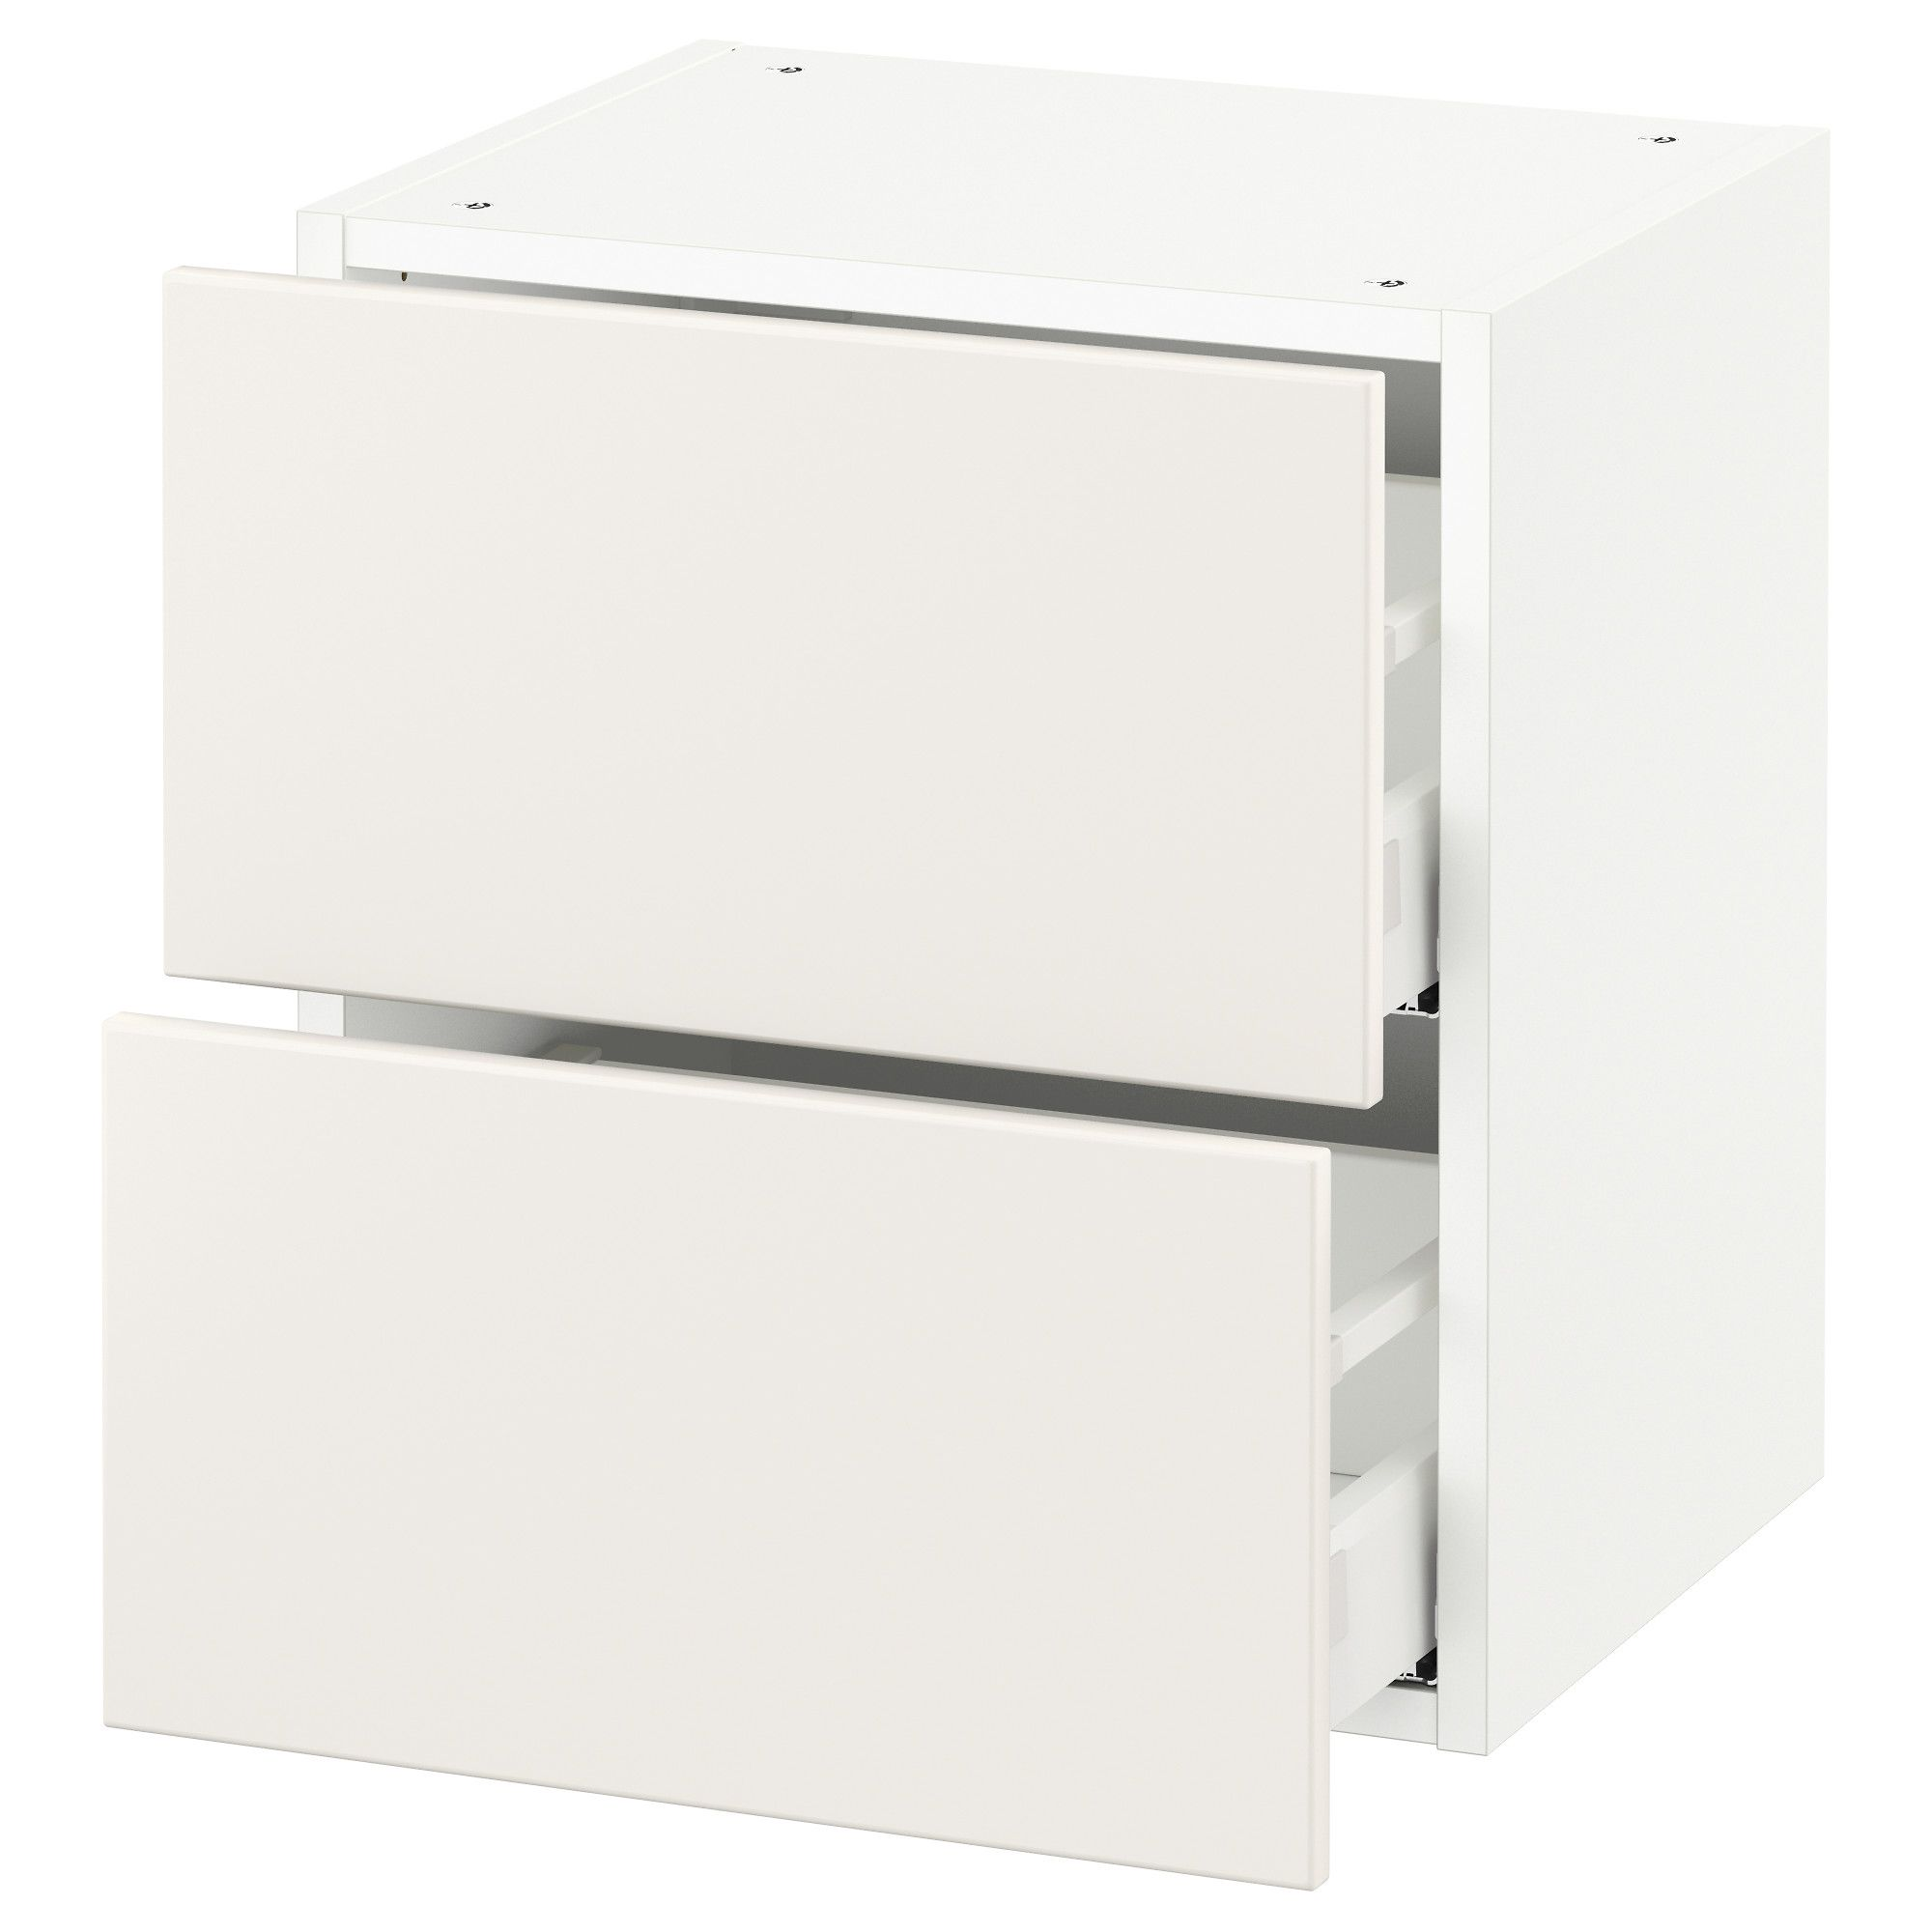 Wall Cabinet With 2 Drawers White Maximera Veddinge White 18x15x20 Kitchen Wall Cabinets Drawers Ikea